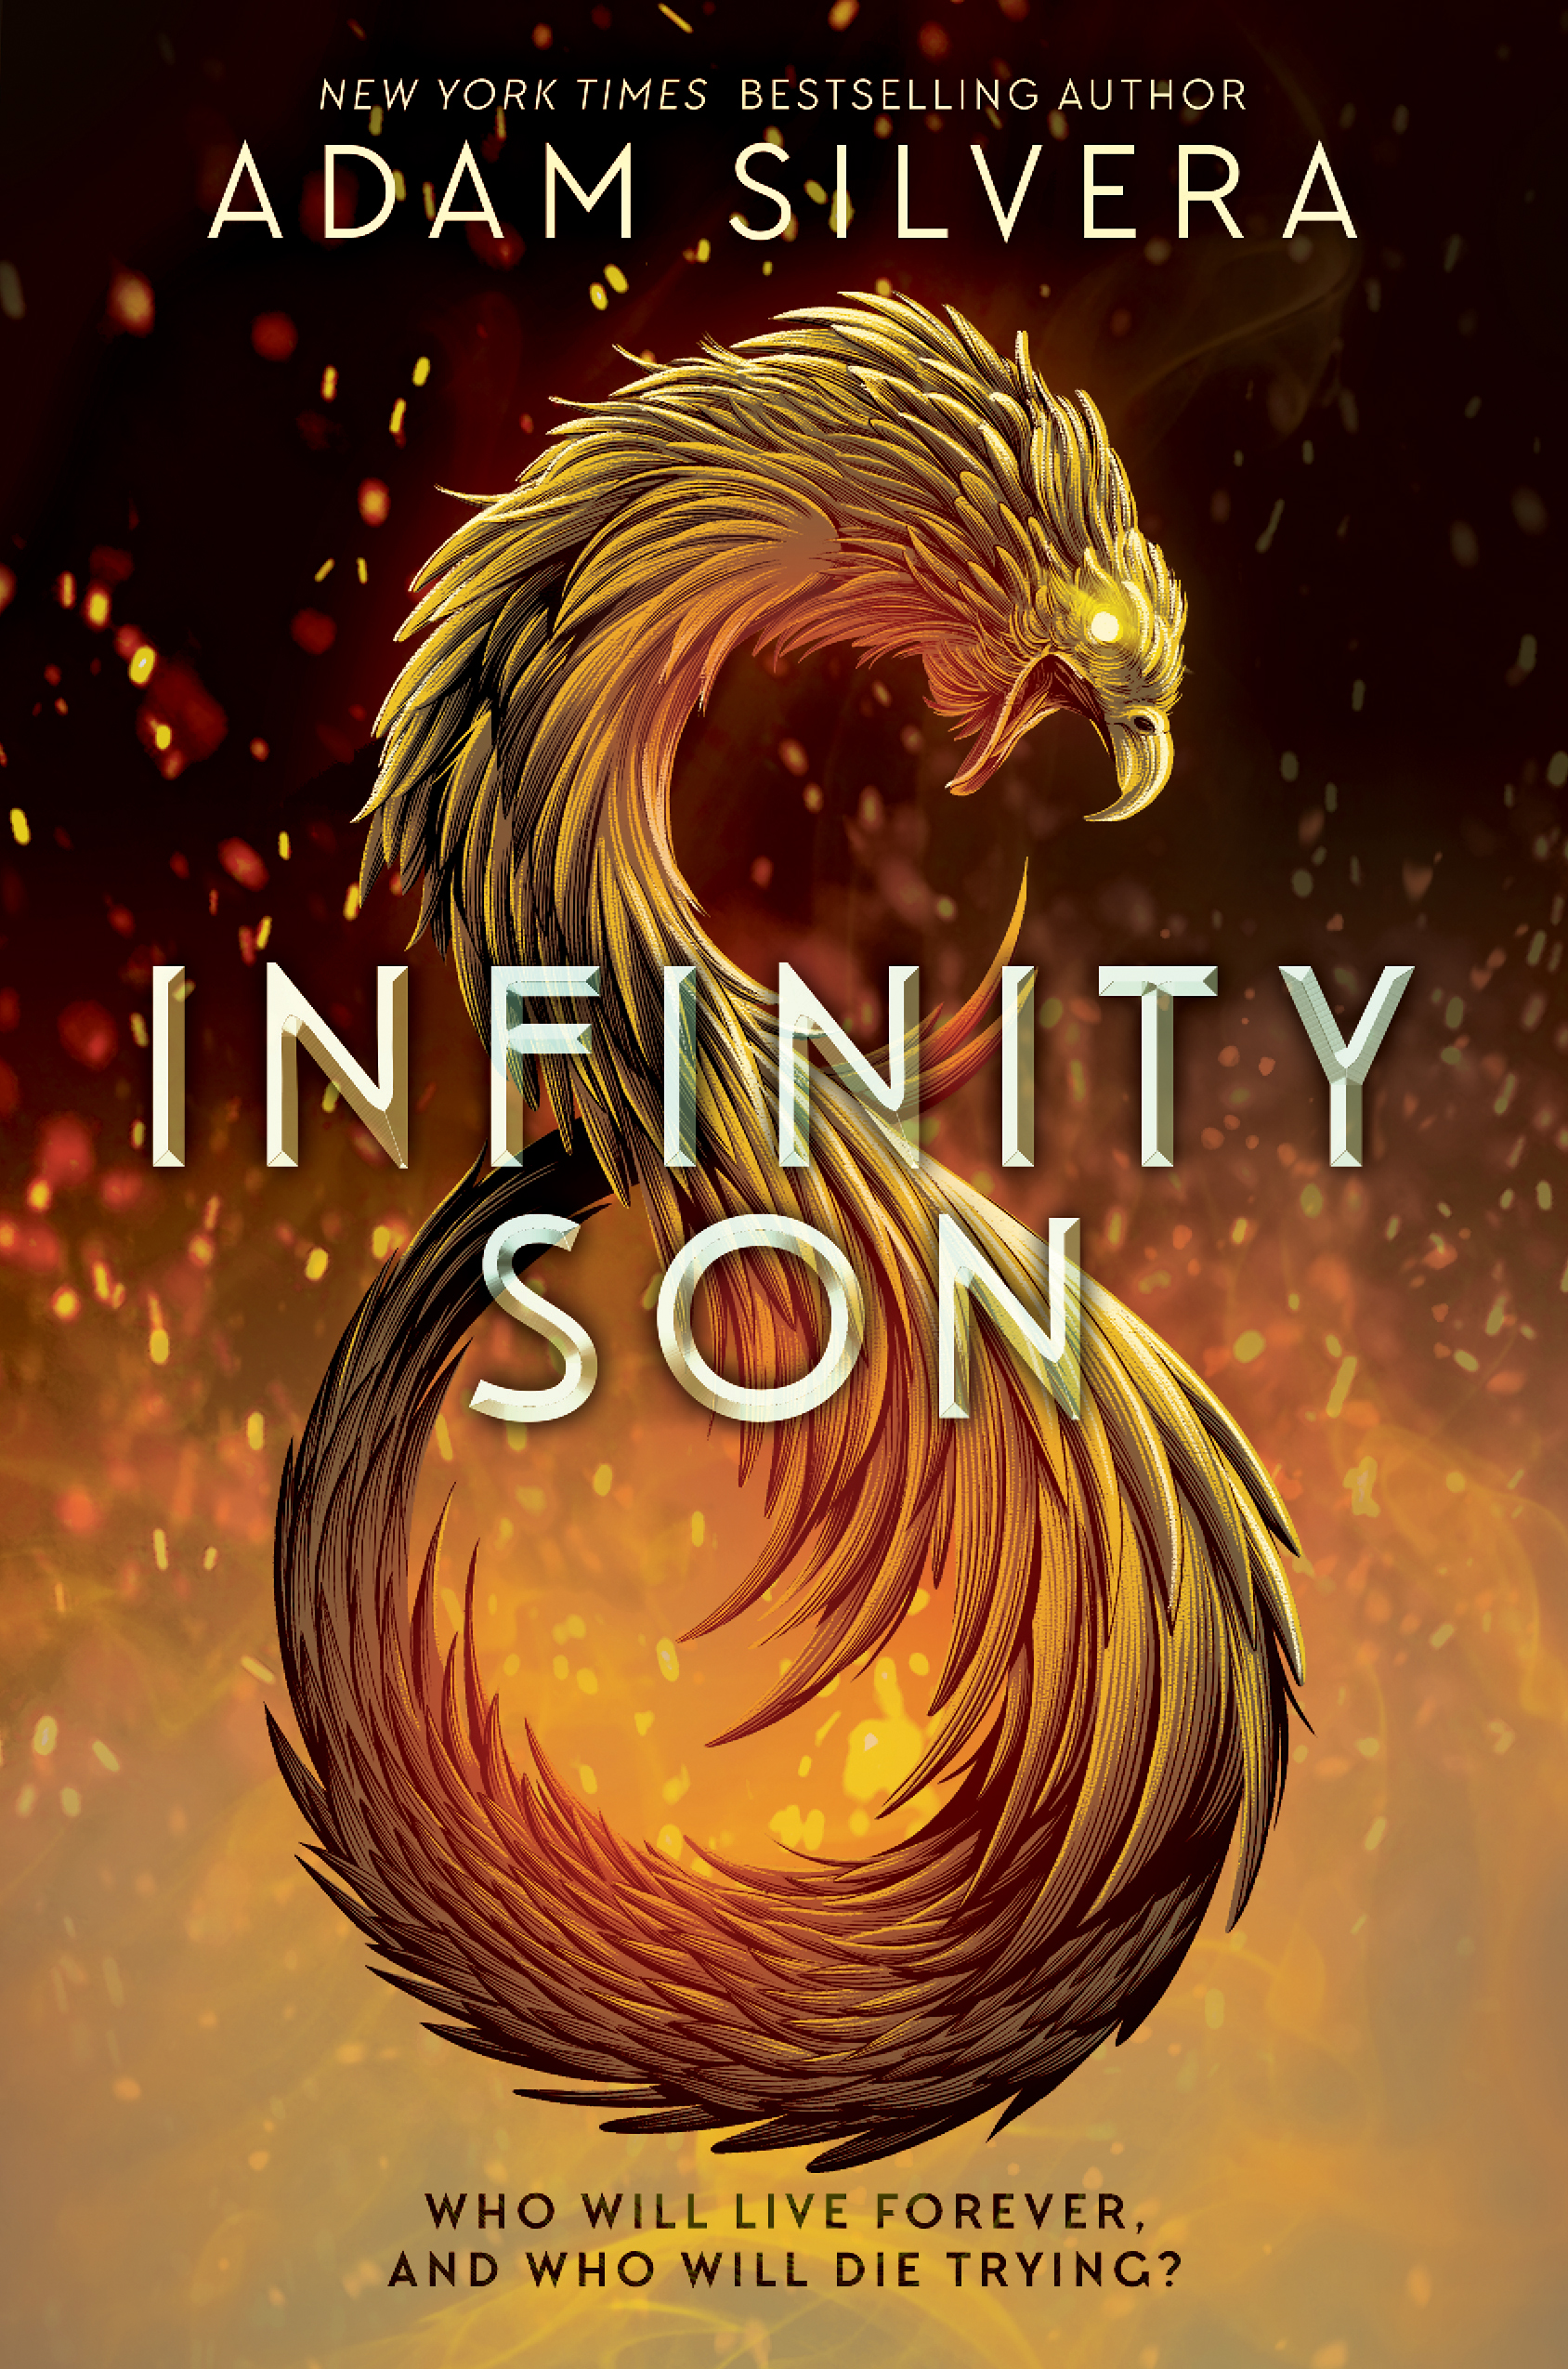 Everything We Know About 'Infinity Son,' Adam Silvera's Epic Fantasy Debut